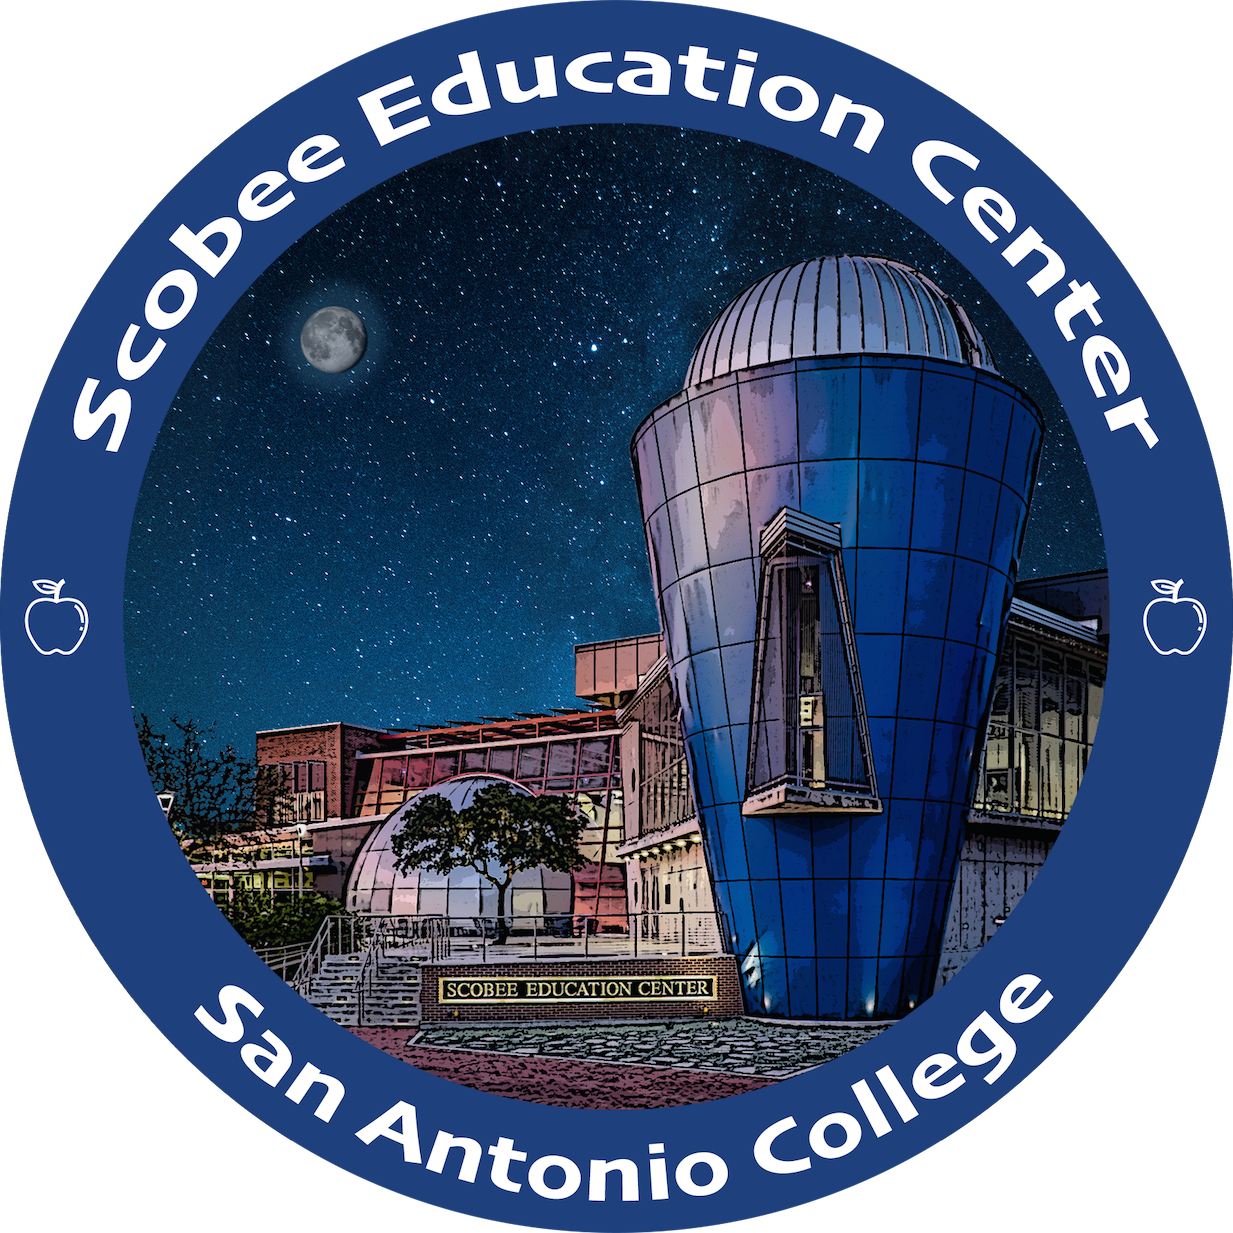 Scobee Education Center at San Antonio College Educator Resources